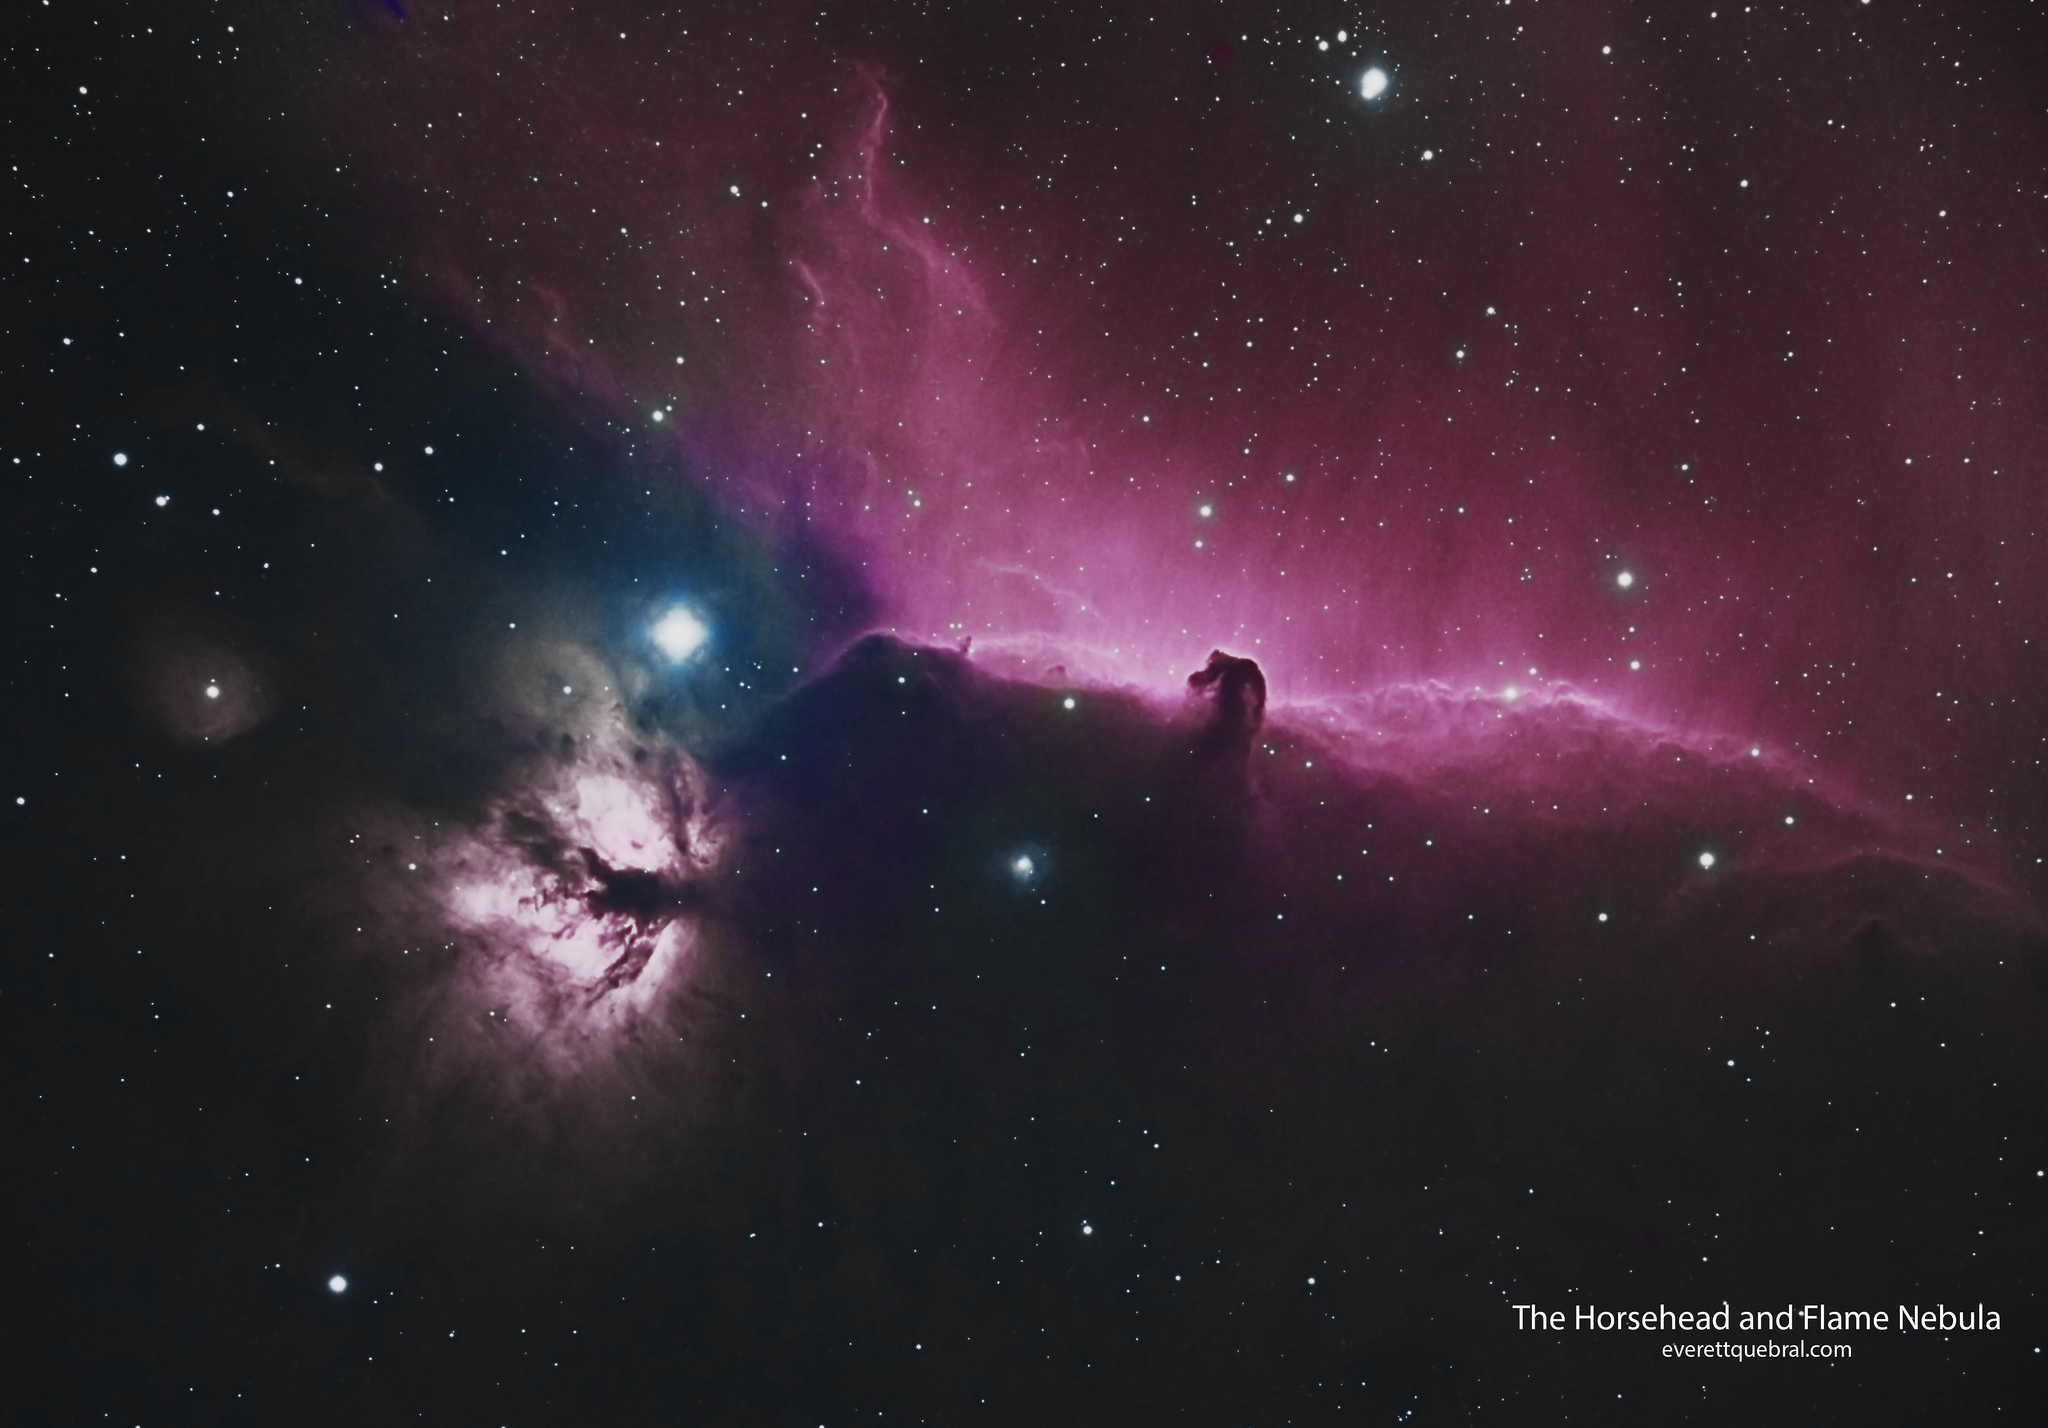 The Horse Head and Flame Nebula